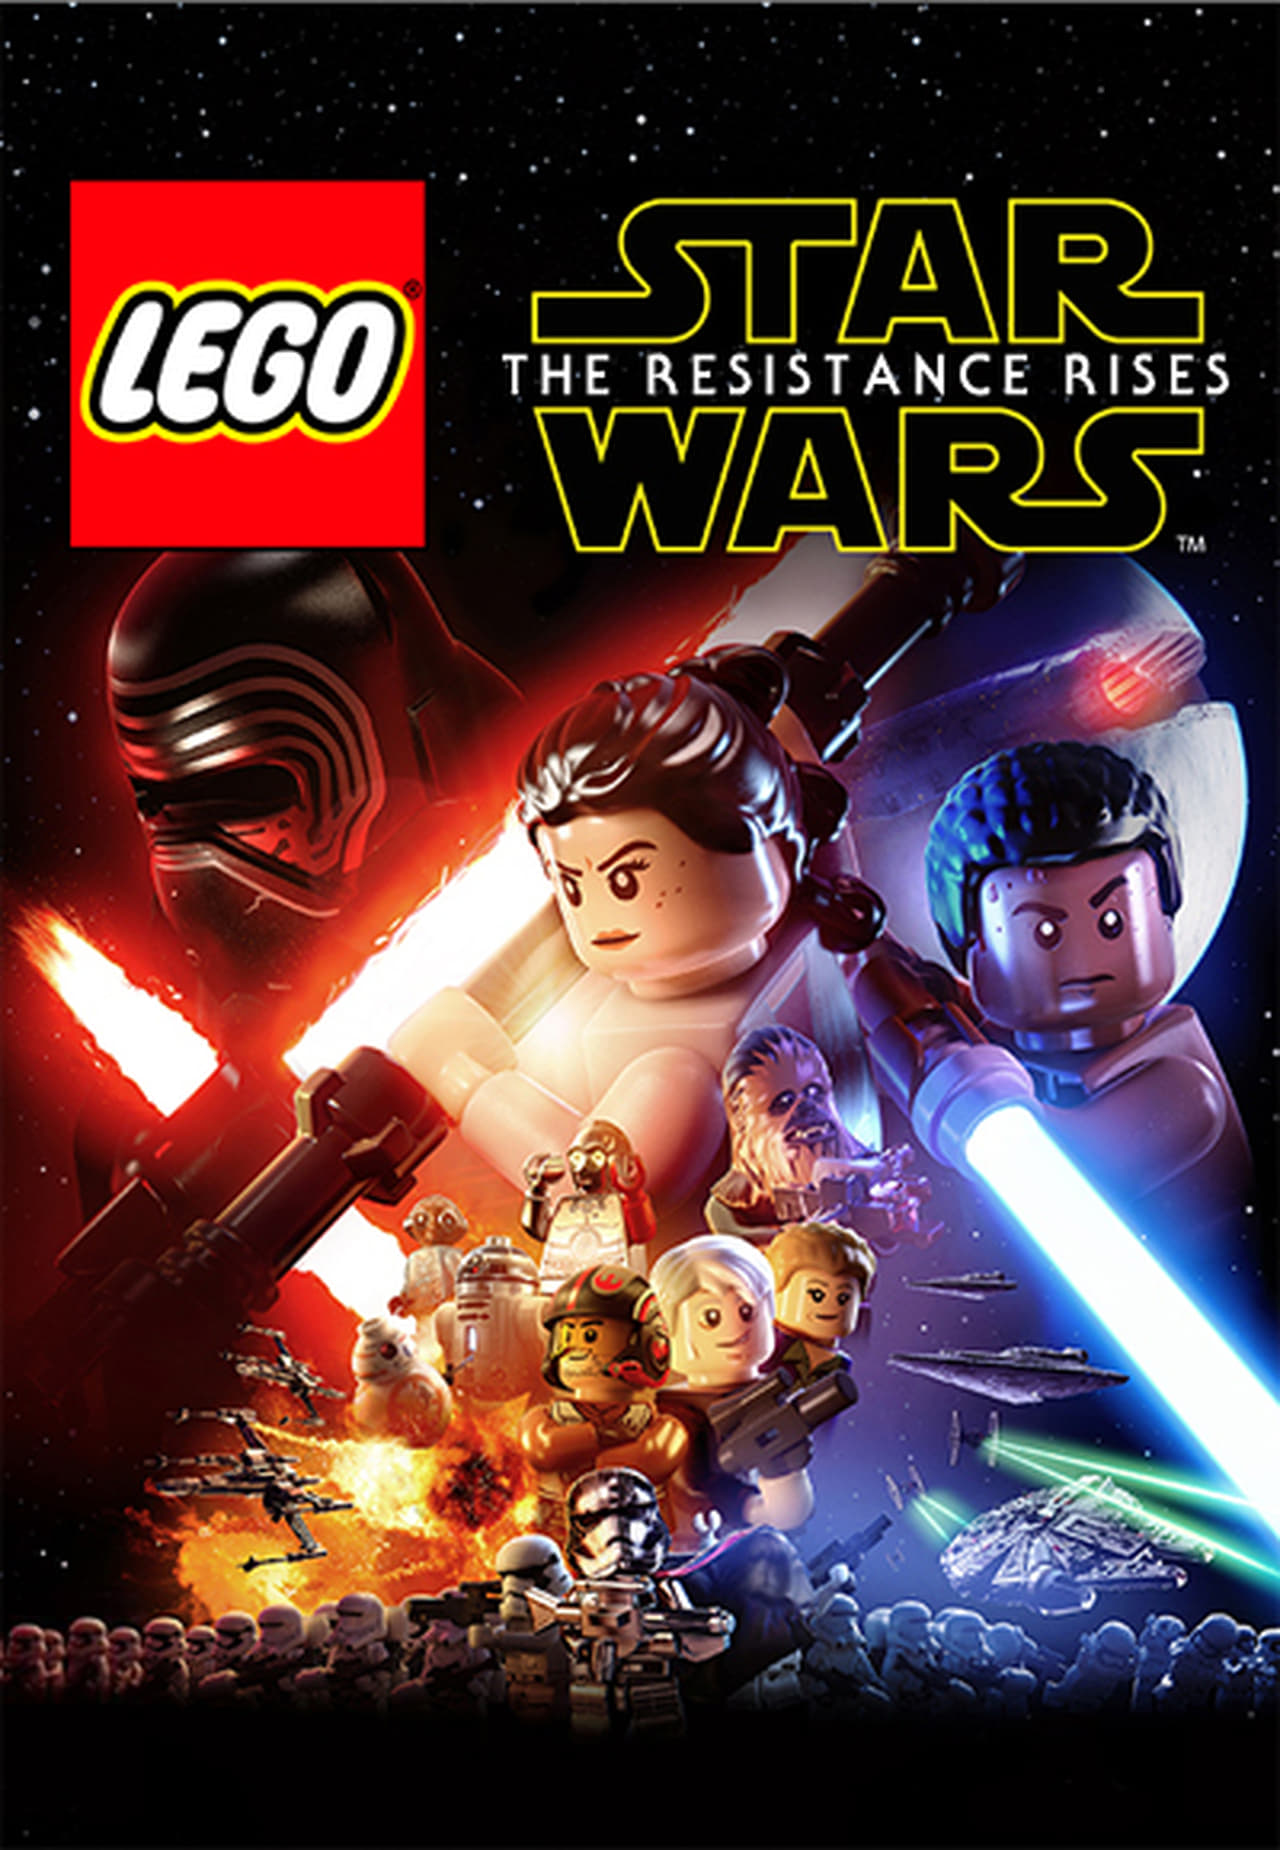 LEGO Star Wars: The Resistance Rises (2016)